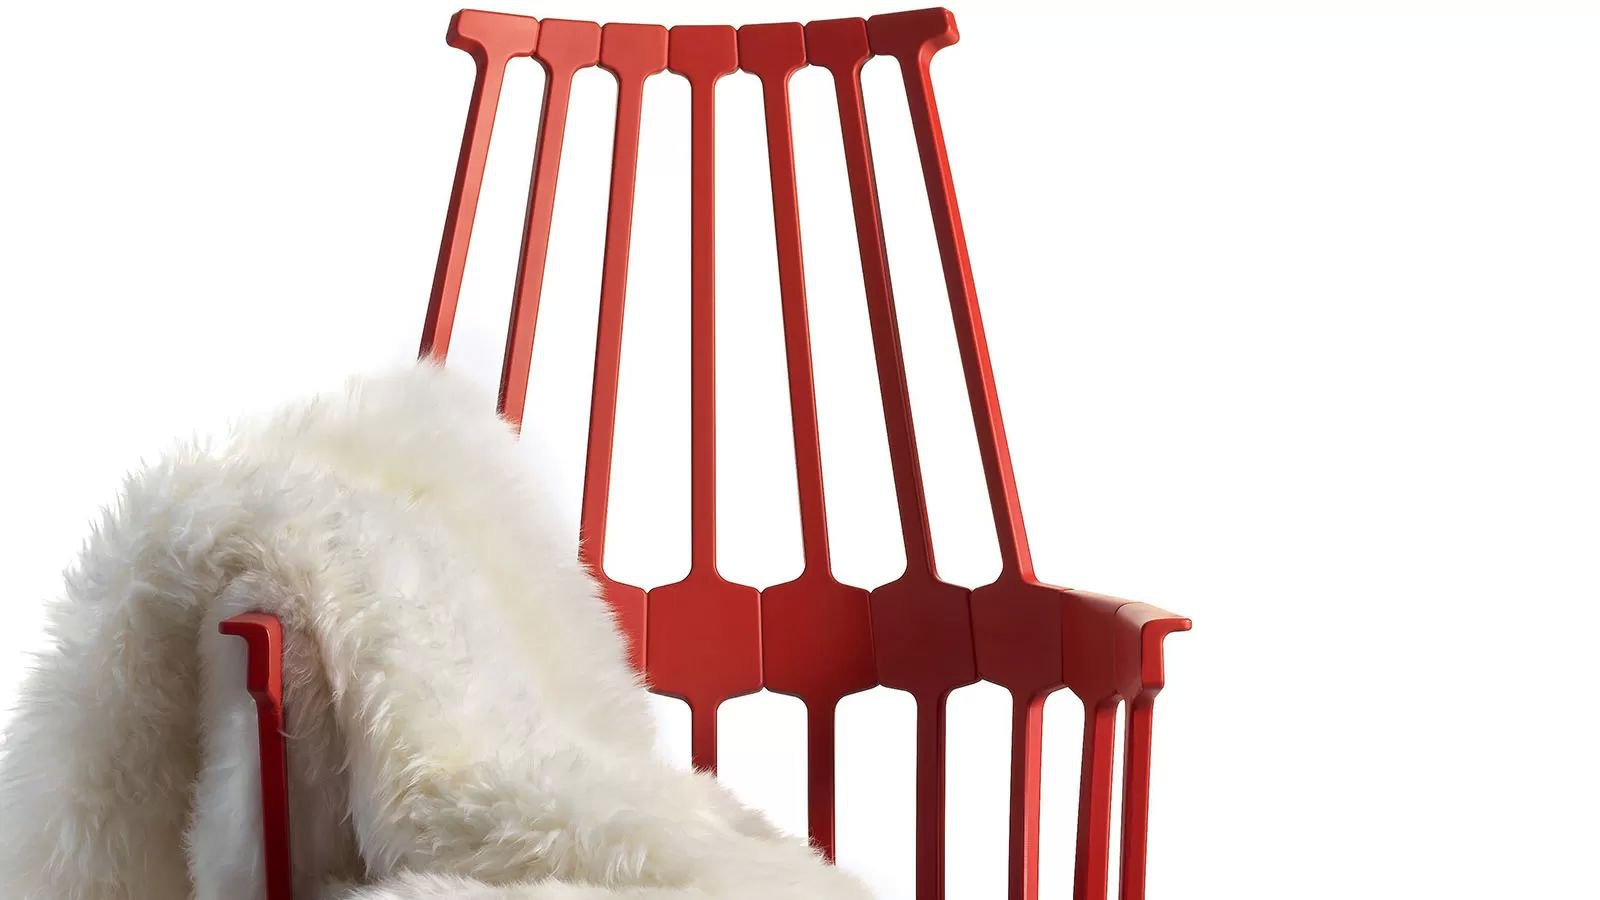 Comback Swivel chair from Kartell, designed by Patricia Urquiola